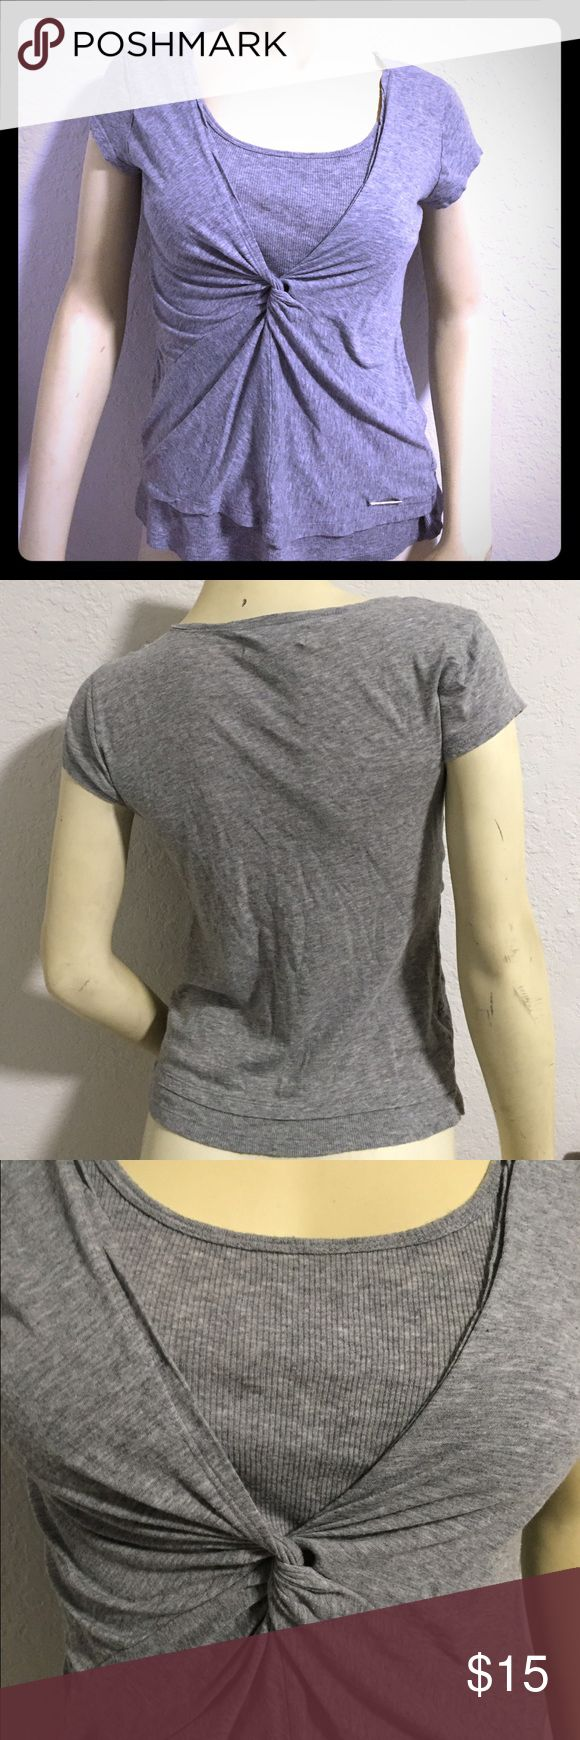 Michael Kors Knotted T-Shirt Super comfortable gray Michael Kors t shirt with knot detail at front. For a little dressier casual look. Size small. Color is gray. Michael Kors Tops Tees - Short Sleeve